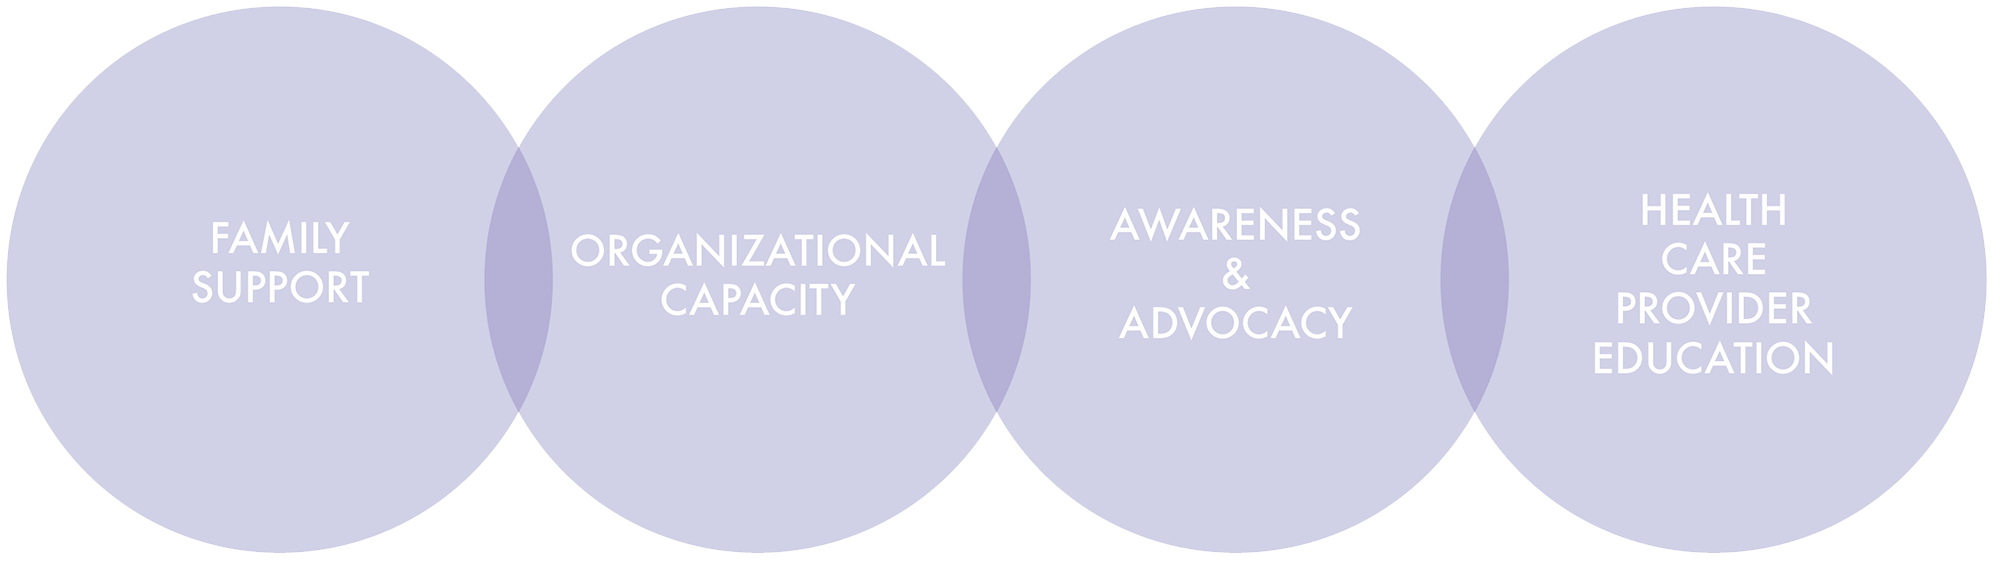 Family Support, Organizational Capacity, Awareness and Advocacy, Health Care Provider Education